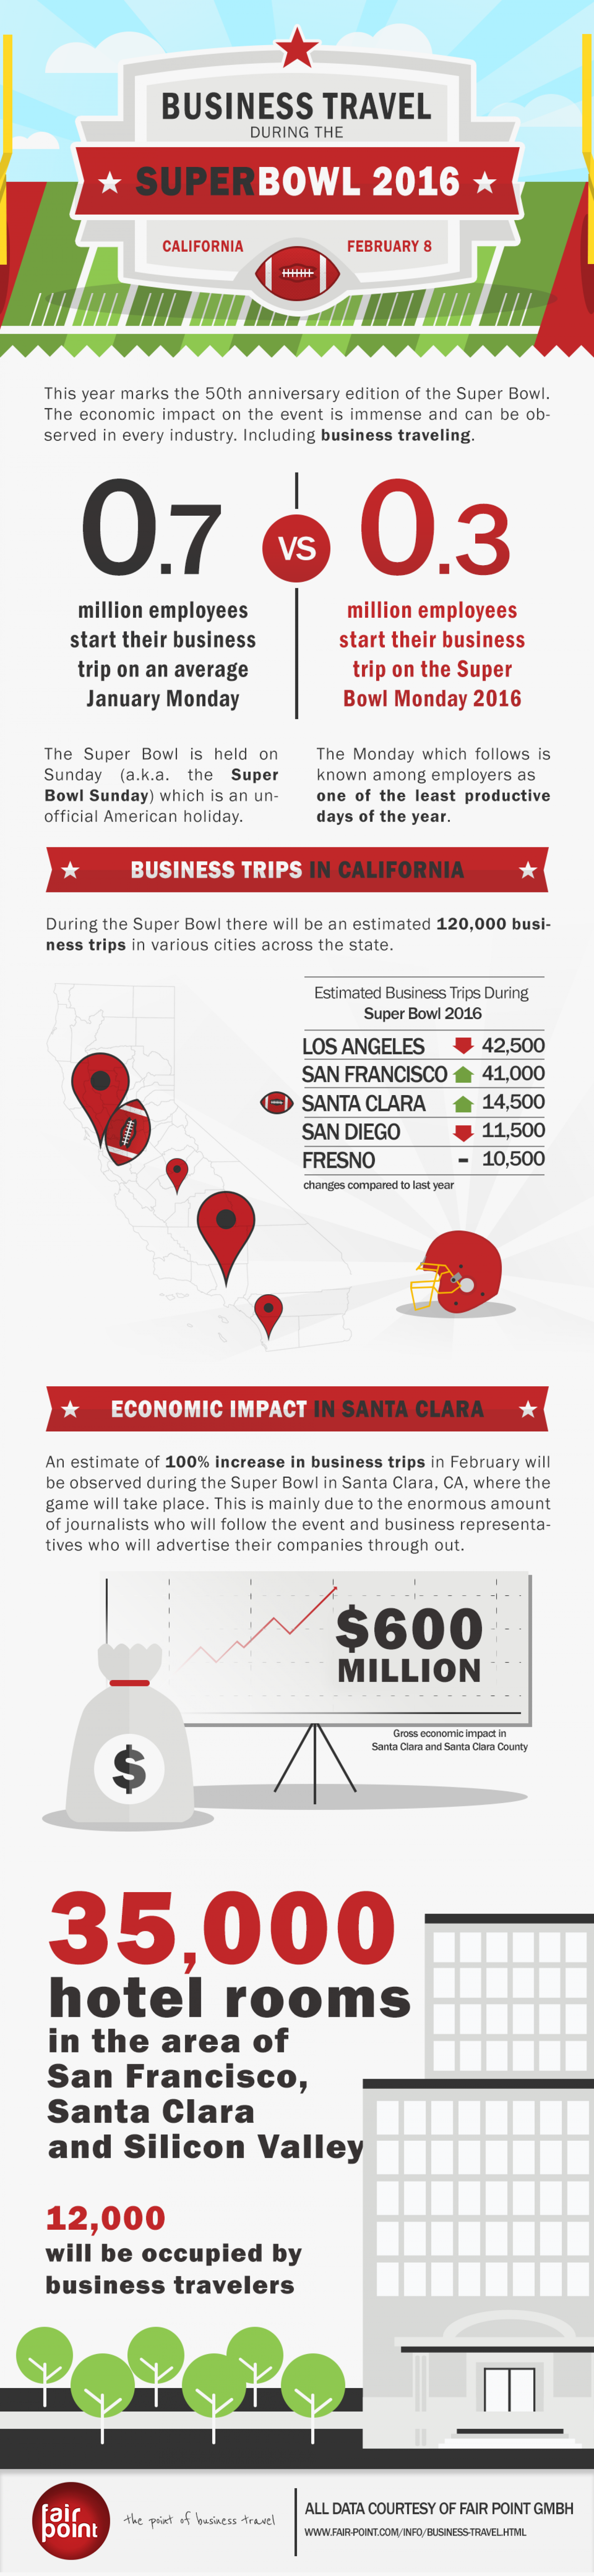 Business Travel During the Super Bowl 2016 Infographic